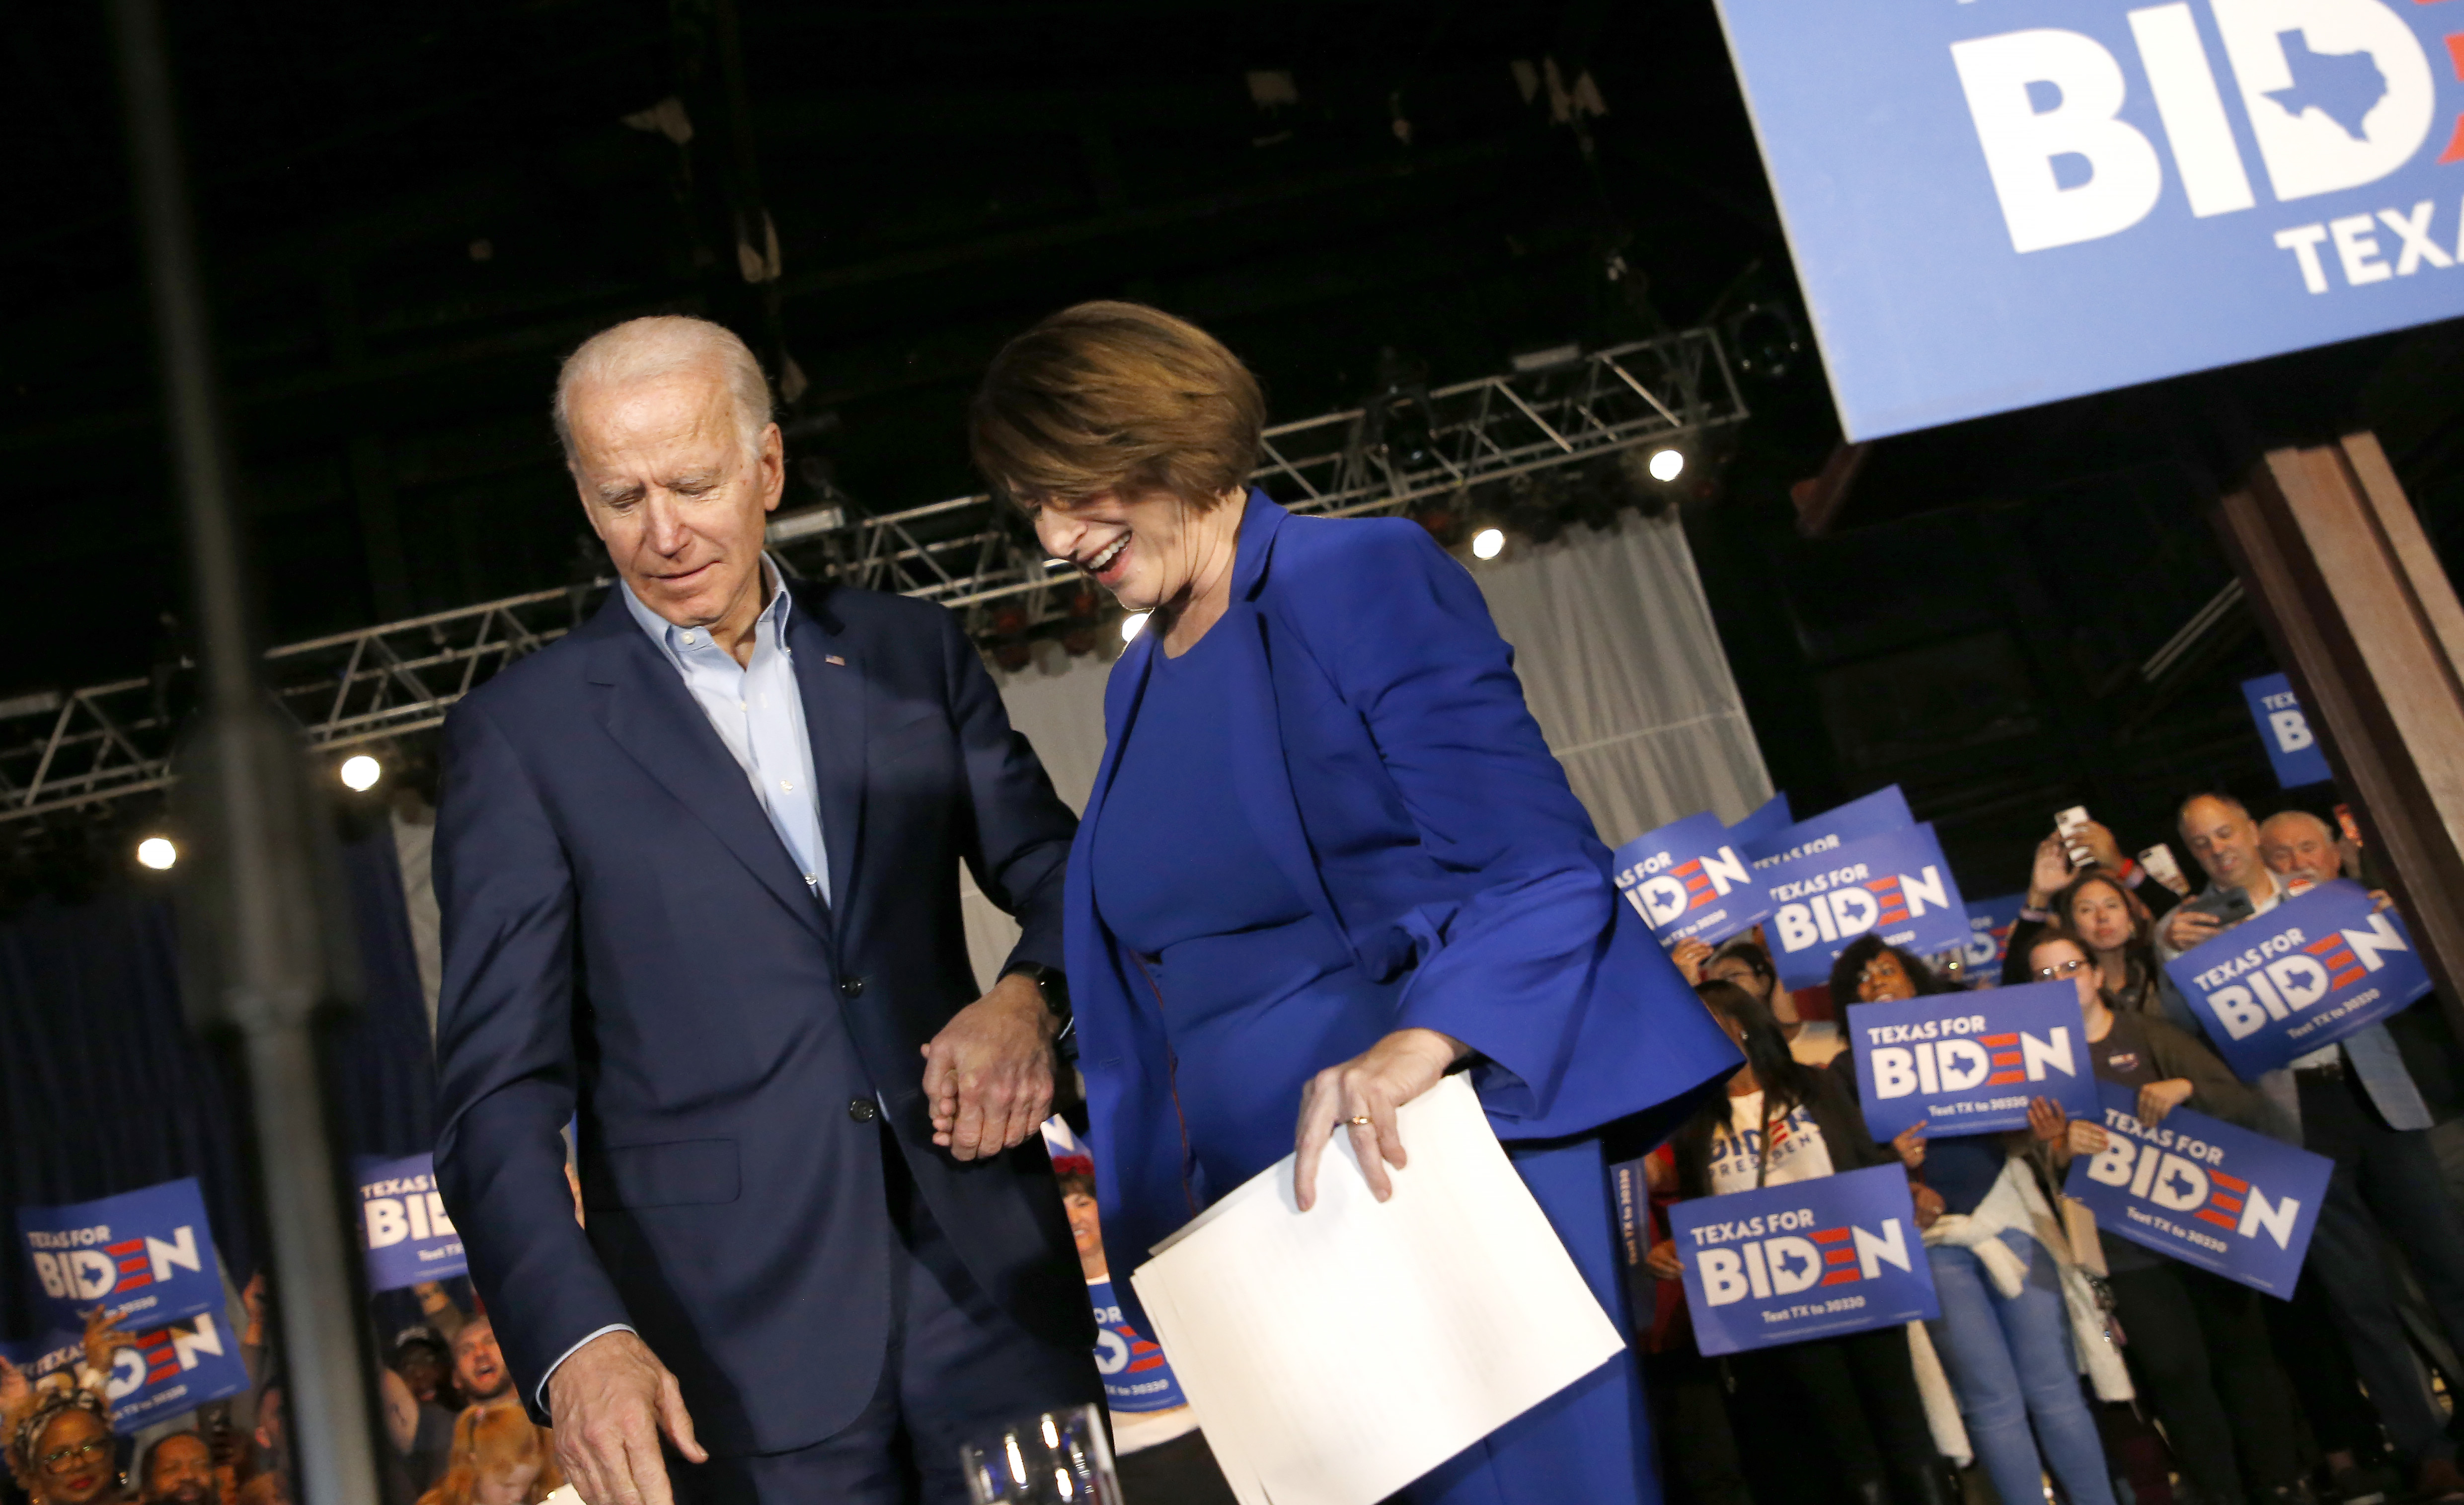 DALLAS, TX - MARCH 02: Democratic presidential candidate former Vice President Joe Biden helps Sen. Amy Klobuchar (D-MN) off the stage during a campaign event on March 2, 2020 in Dallas, Texas. Klobuchar has suspended her campaign and endorsed Biden before the upcoming Super Tuesday Democratic presidential primaries. (Photo by Ron Jenkins/Getty Images)